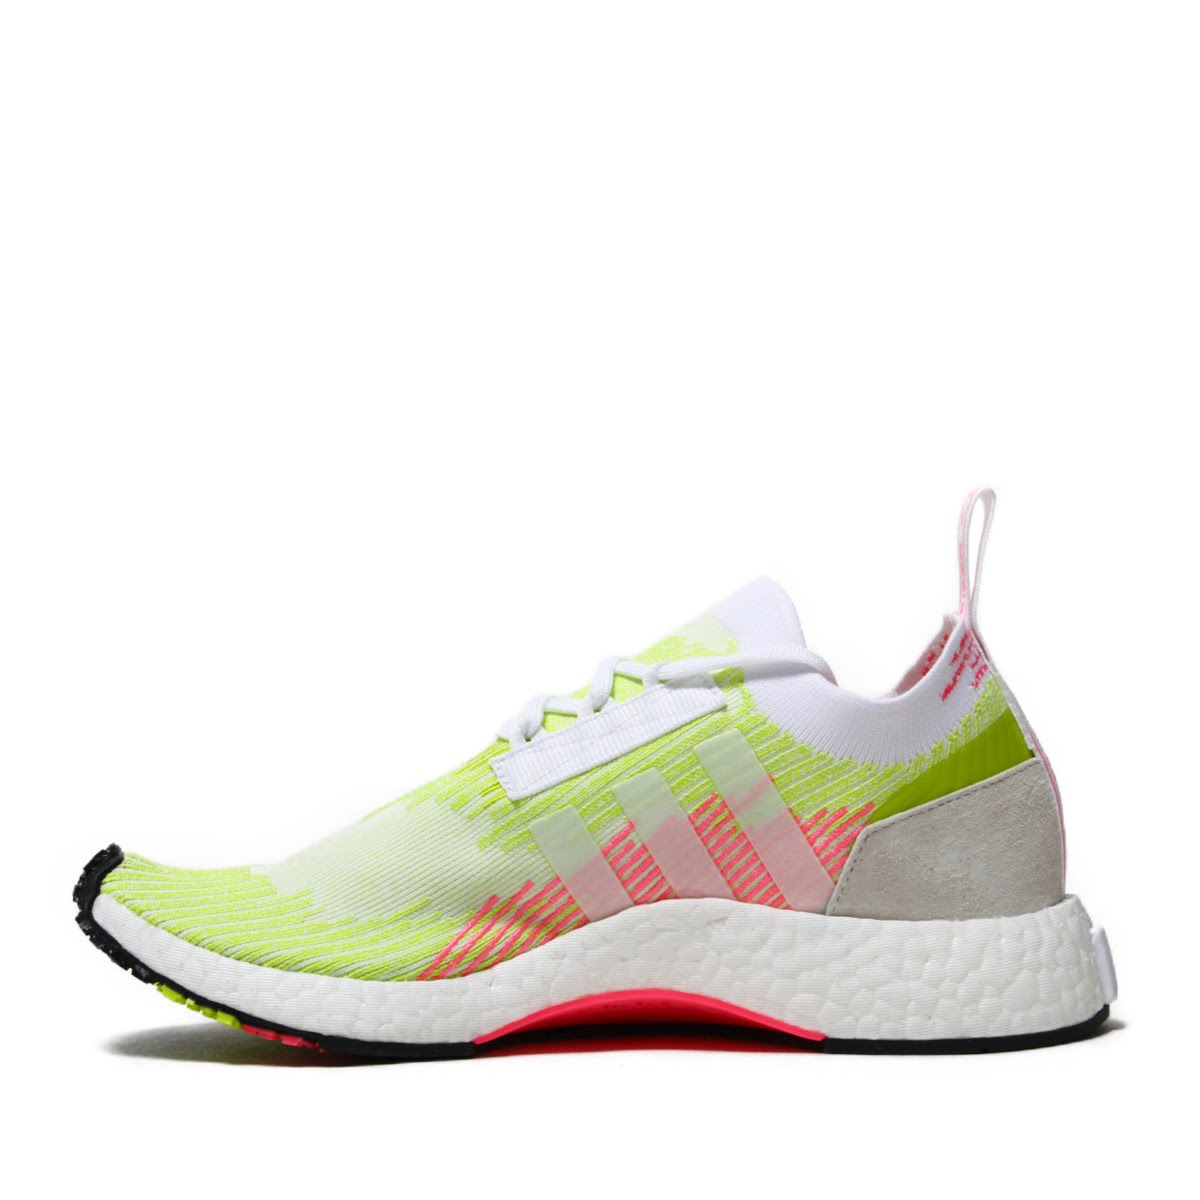 1433d5e64db9a8 adidas Originals NMD RACER PK W (Adidas originals N M D racer PKW) SEMI  SOLAR YELLOW SEMI SOLAR YELLOW RUNNING WHITE 18FA-I